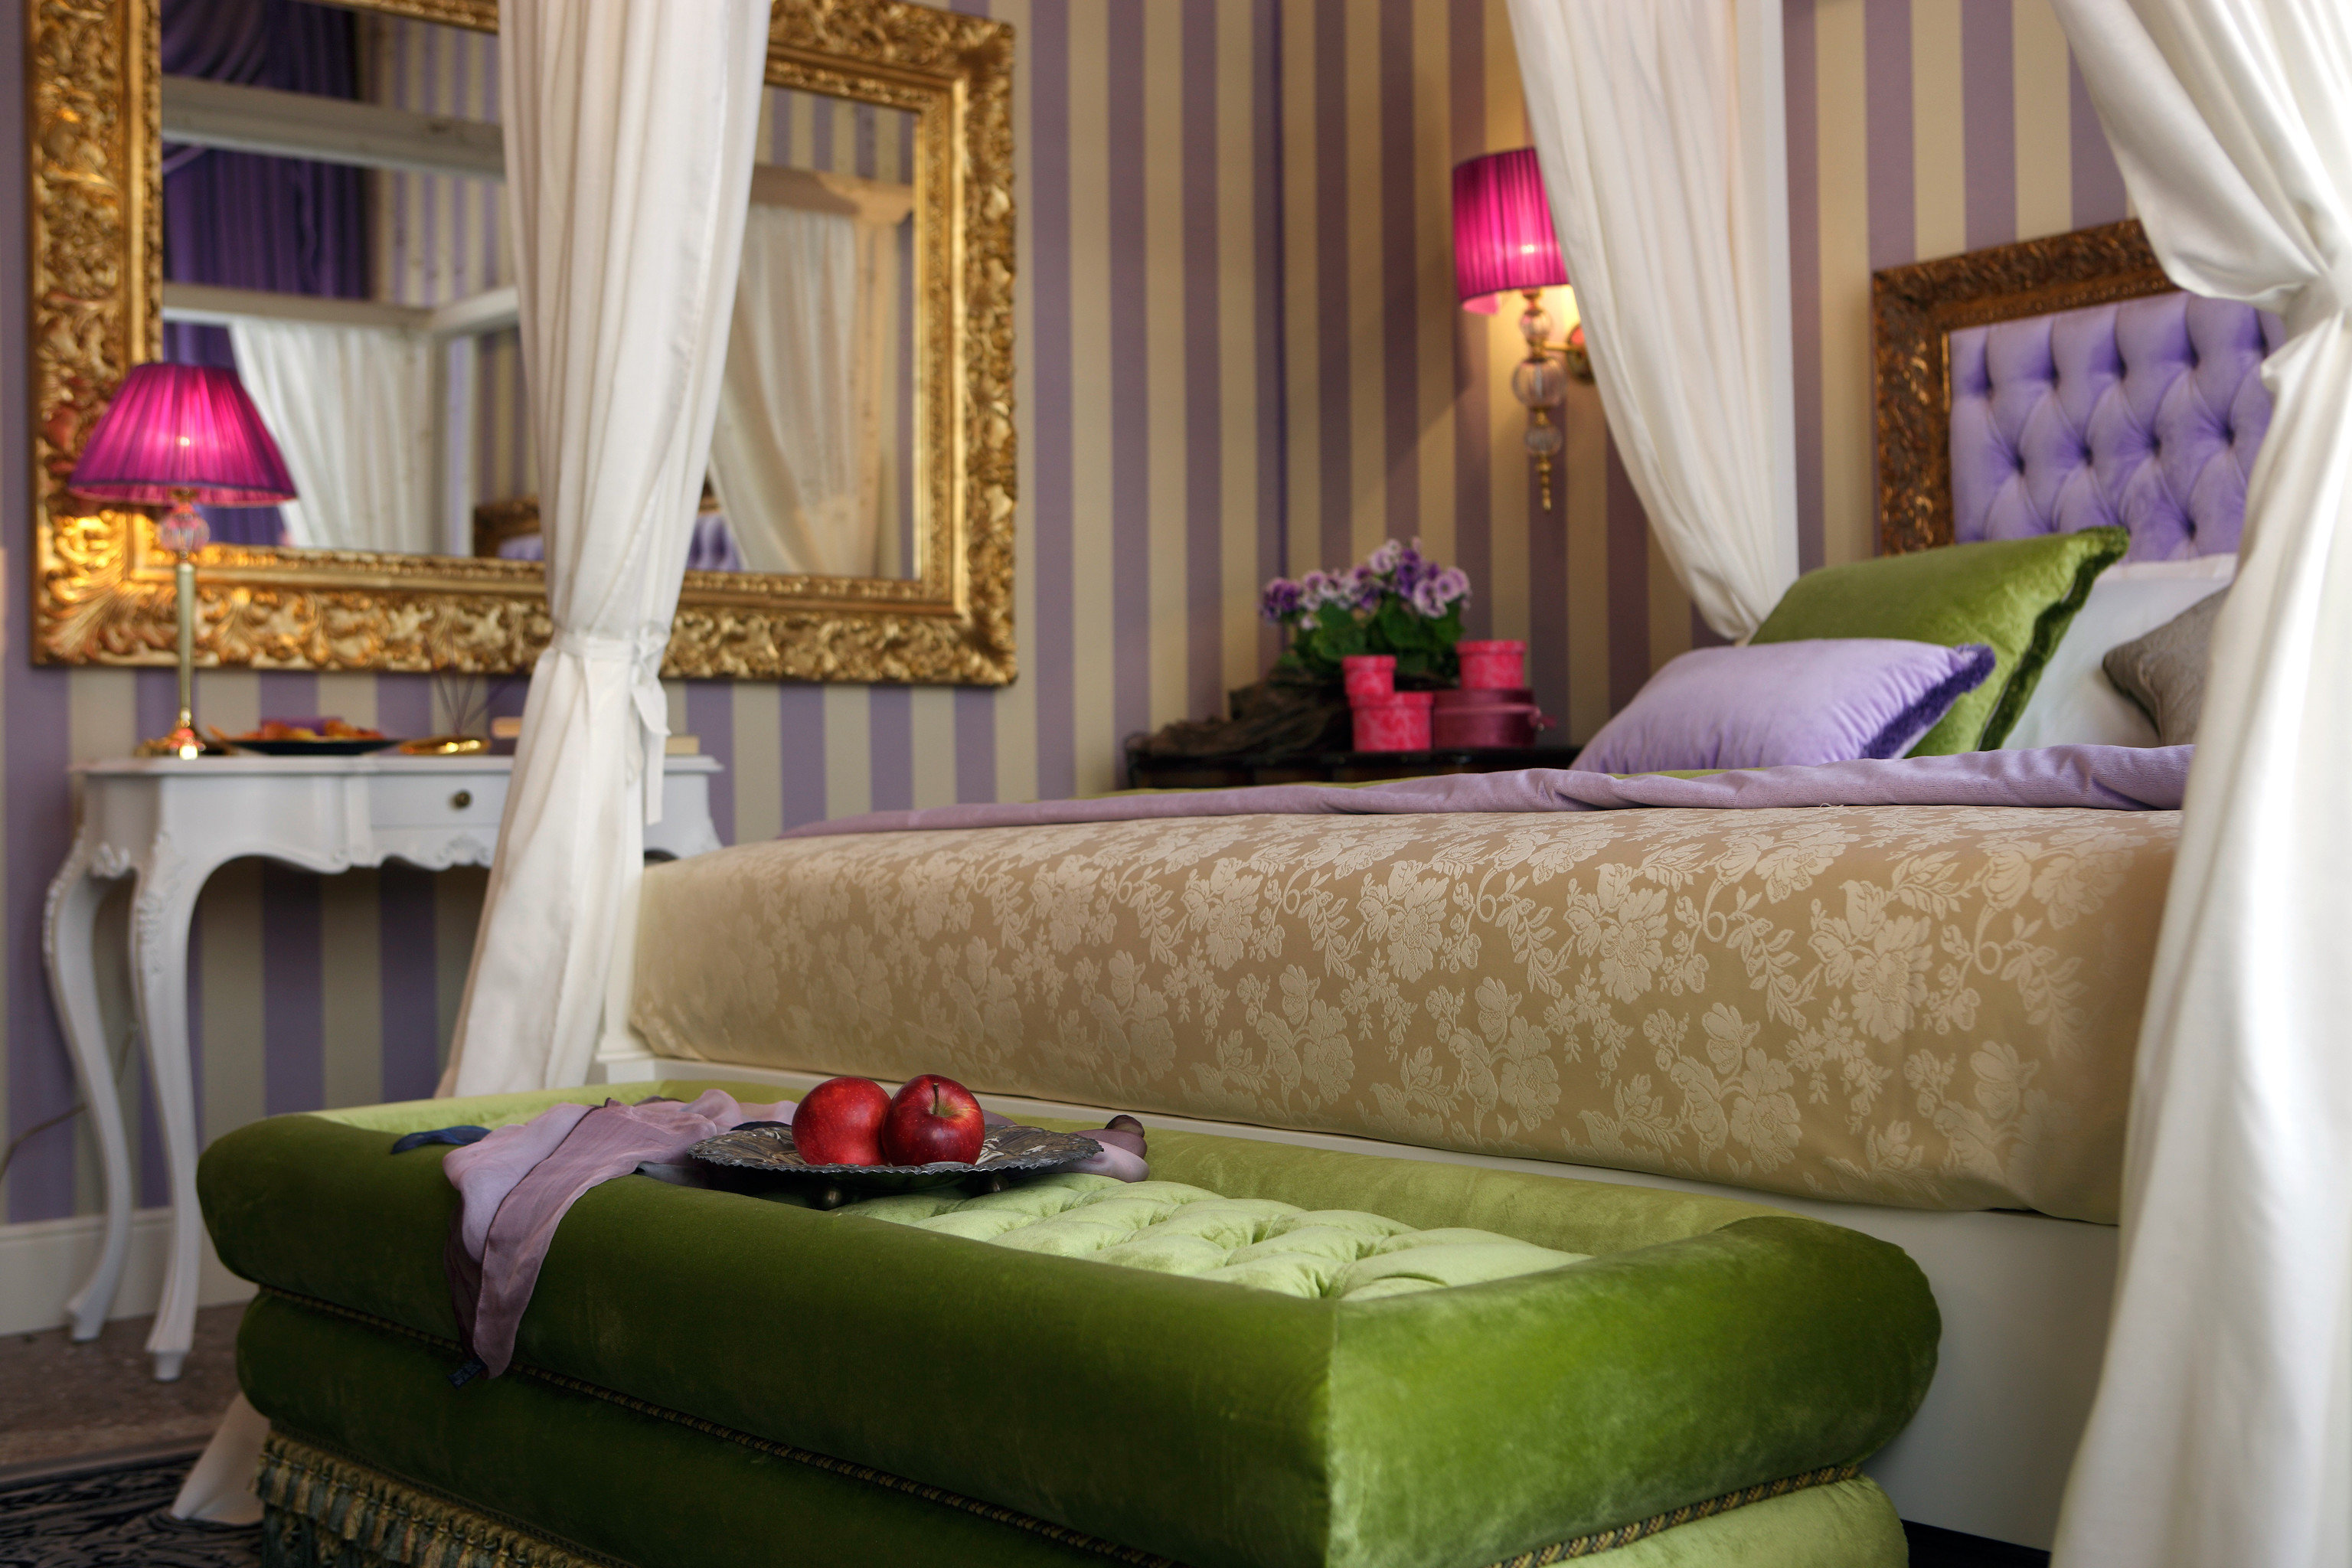 Bedroom Hip Historic Luxury curtain property home Suite living room cottage bed sheet mansion arranged containing